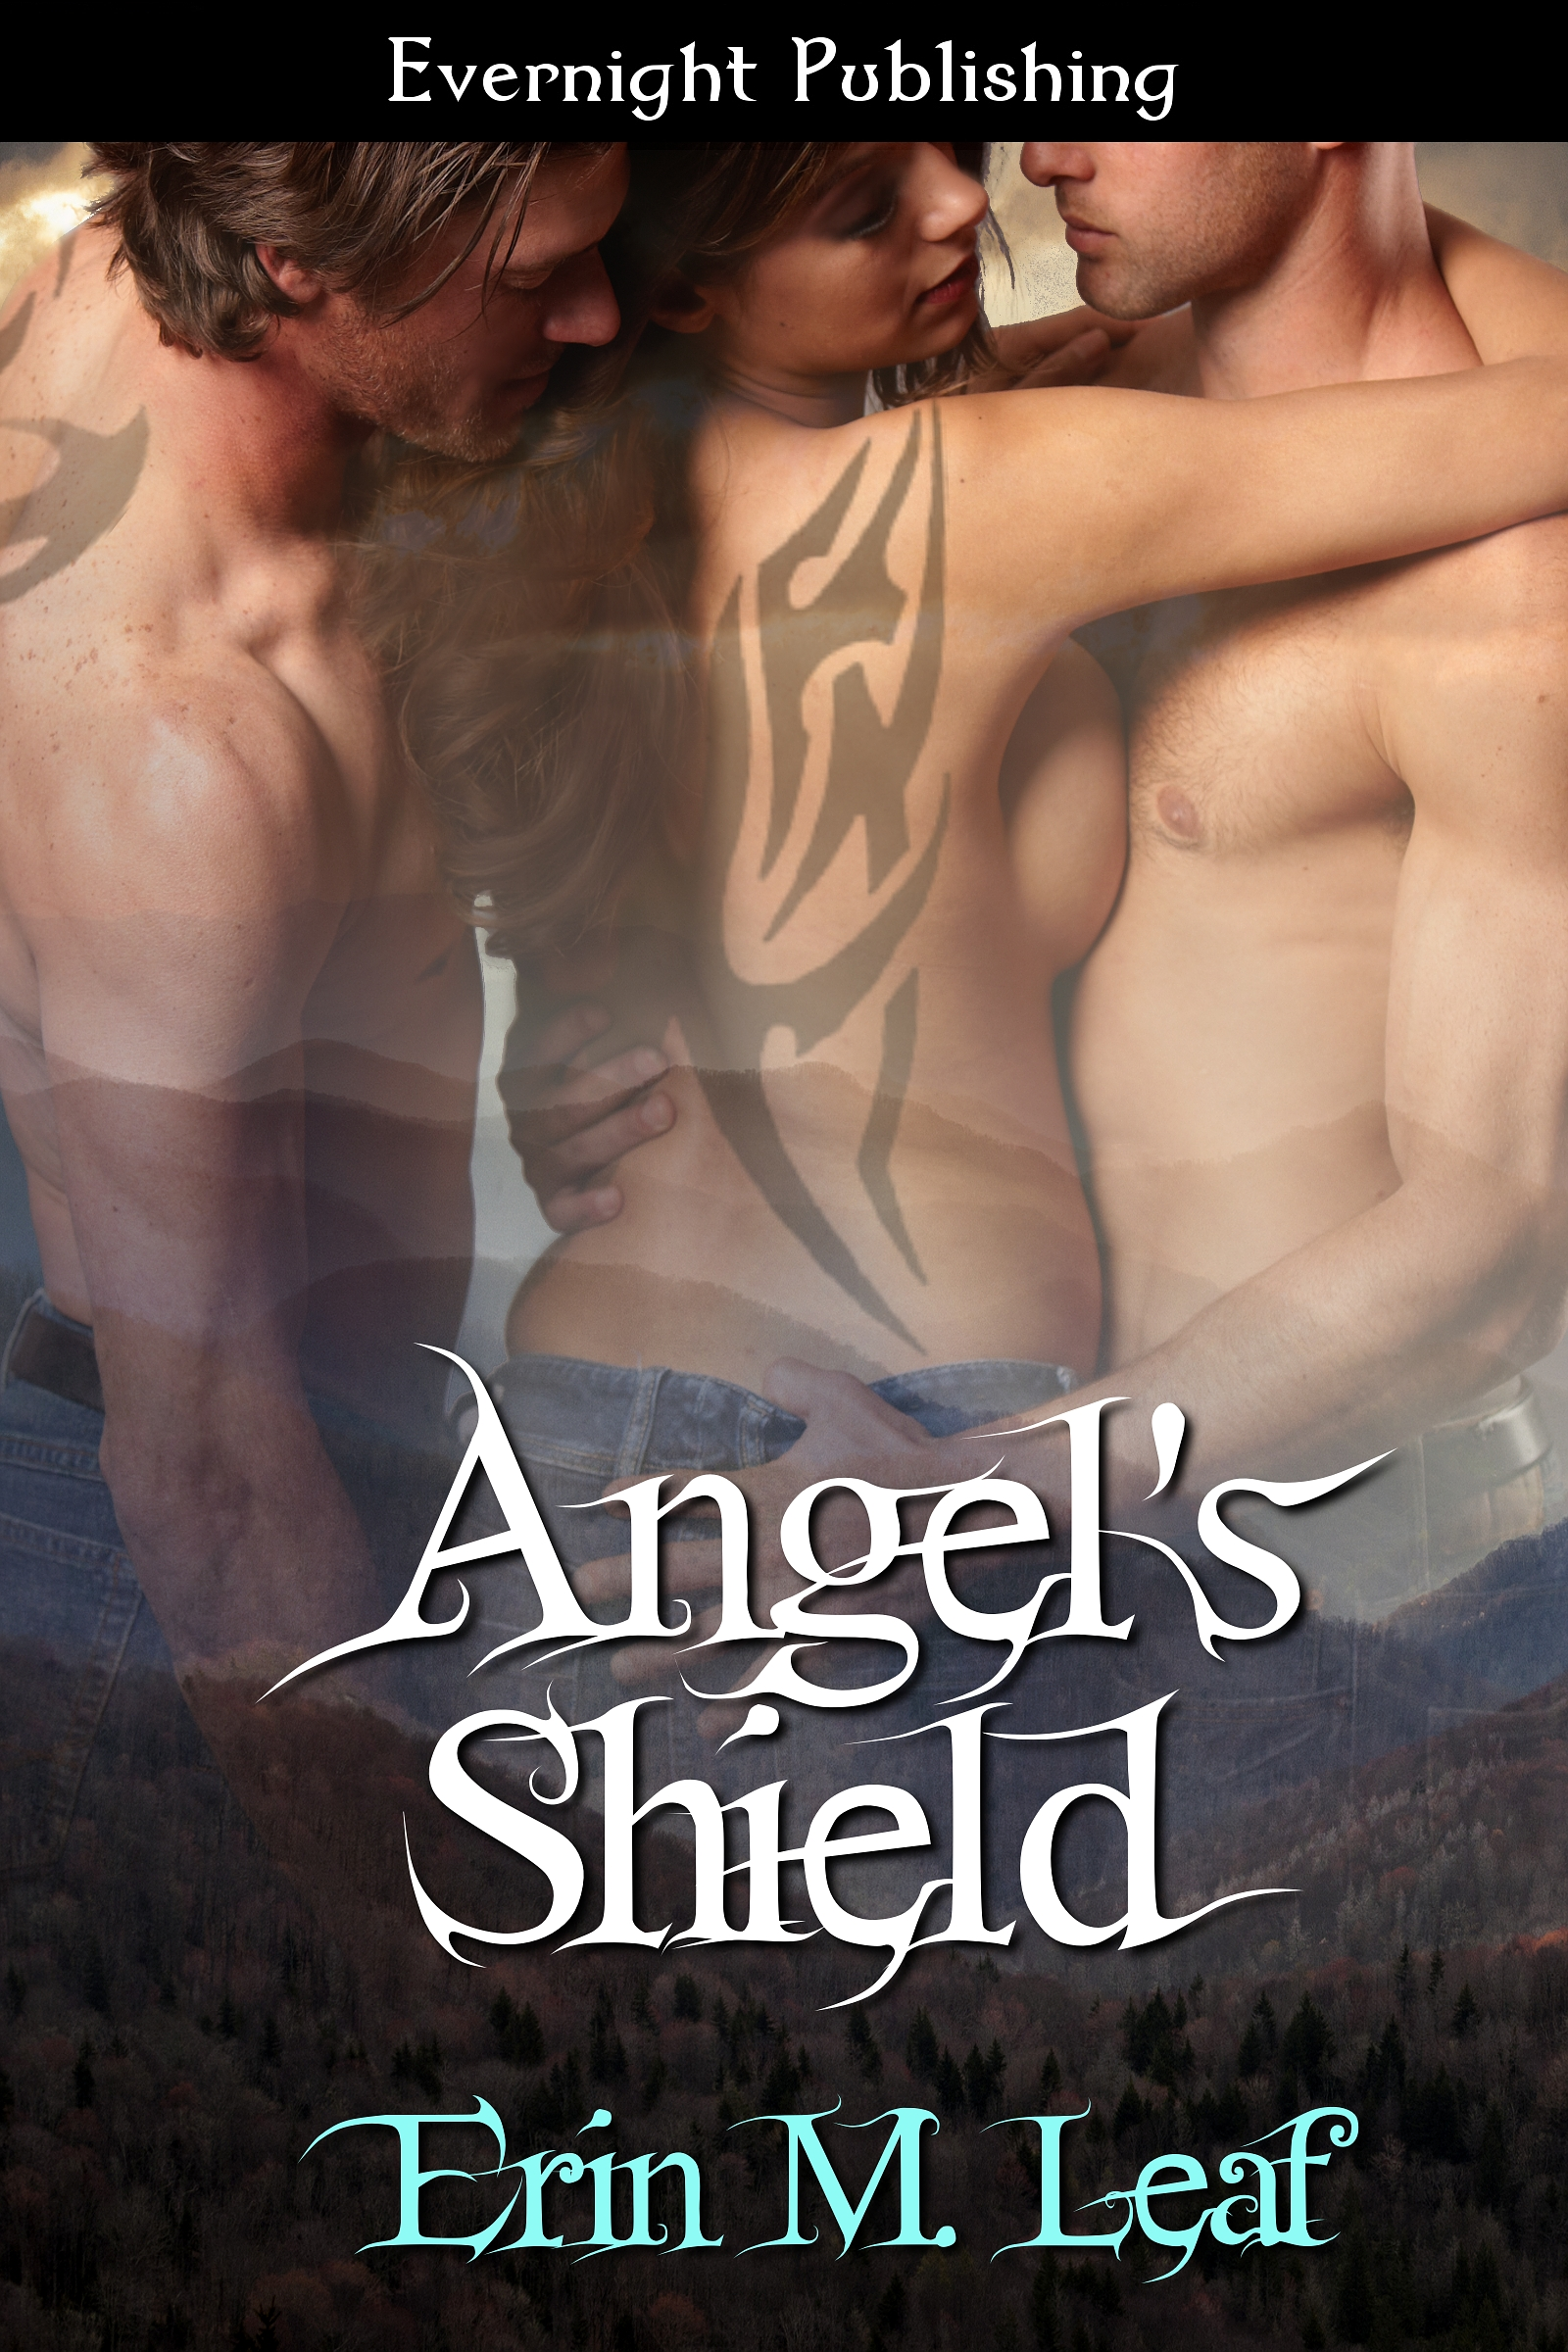 Erotic Fantasy Sex Shemale Erotic Romance Menage MMF Paranormal Interracial Fantasy Shifters Word Count 29 440 Heat Level 4 Published By Evernight Publishing